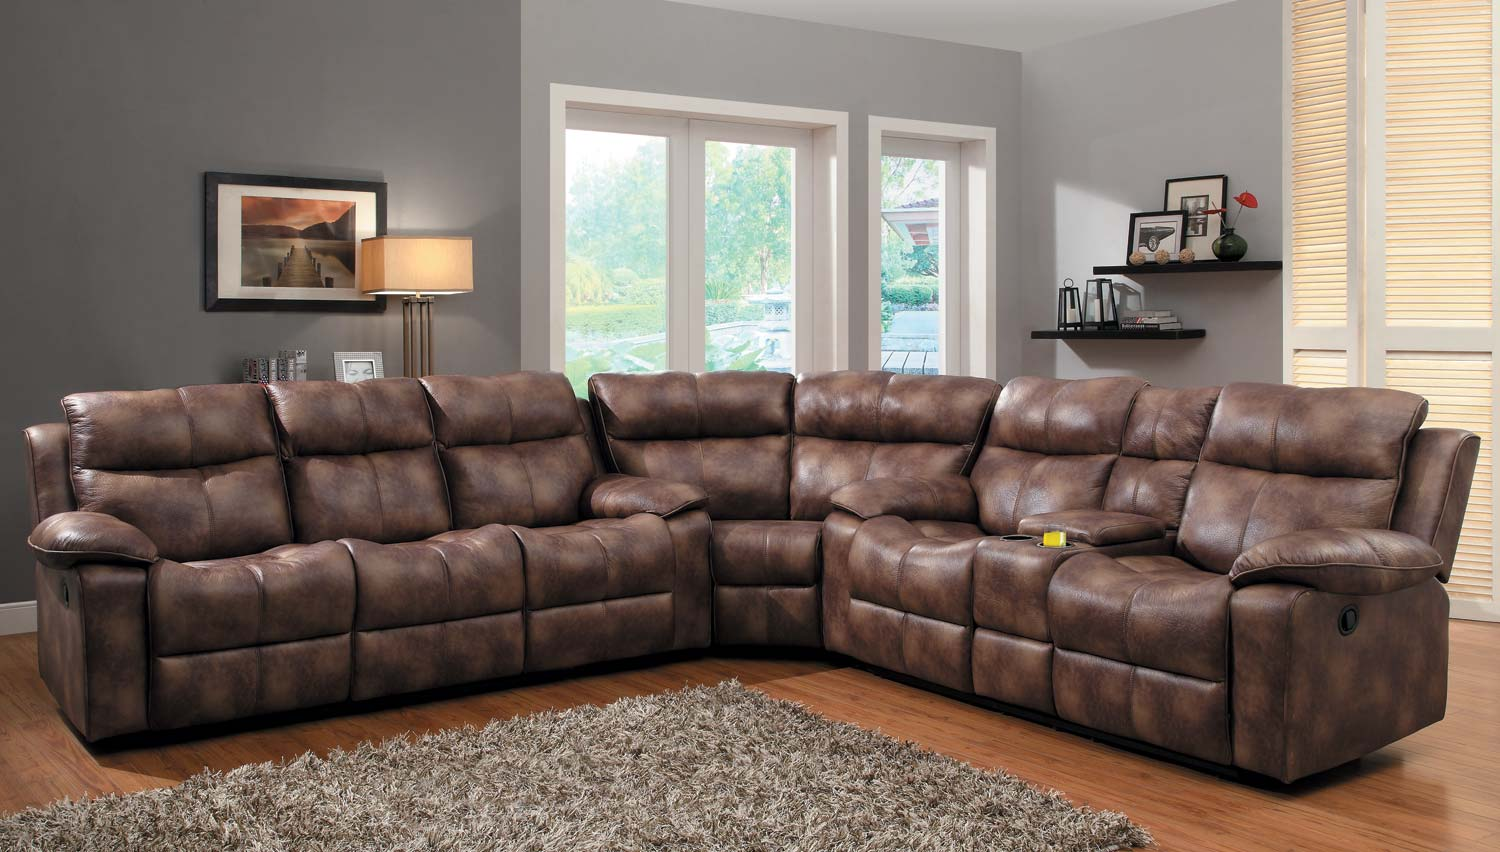 Homelegance Brooklyn Heights Reclining Sectional Sofa Set - Polished Microfiber & Homelegance Brooklyn Heights Reclining Sectional Sofa Set ... islam-shia.org